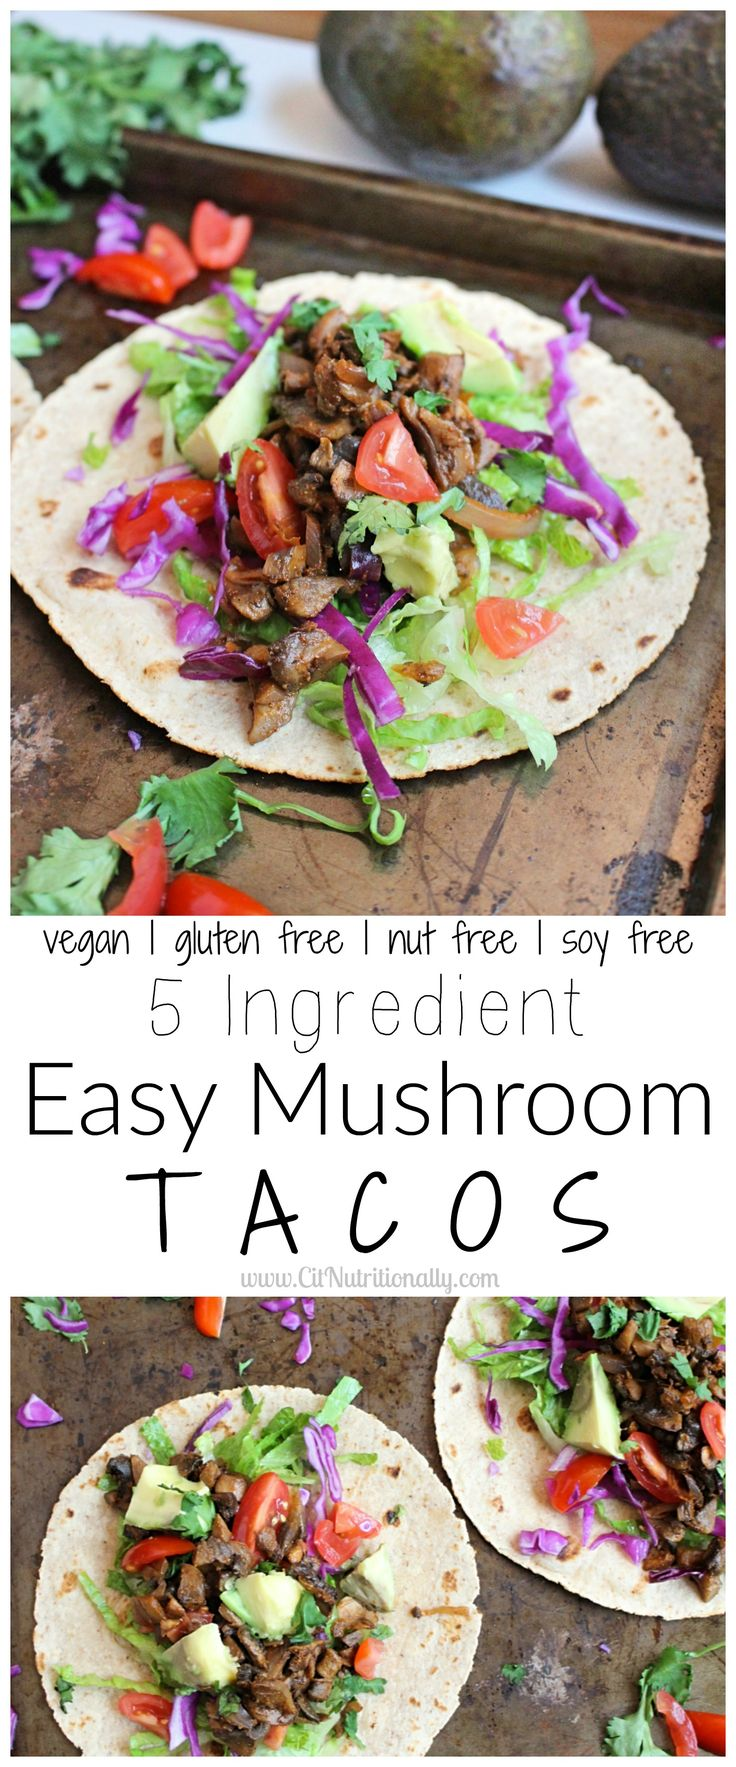 Find This Pin And More On C It Nutritionally Recipes